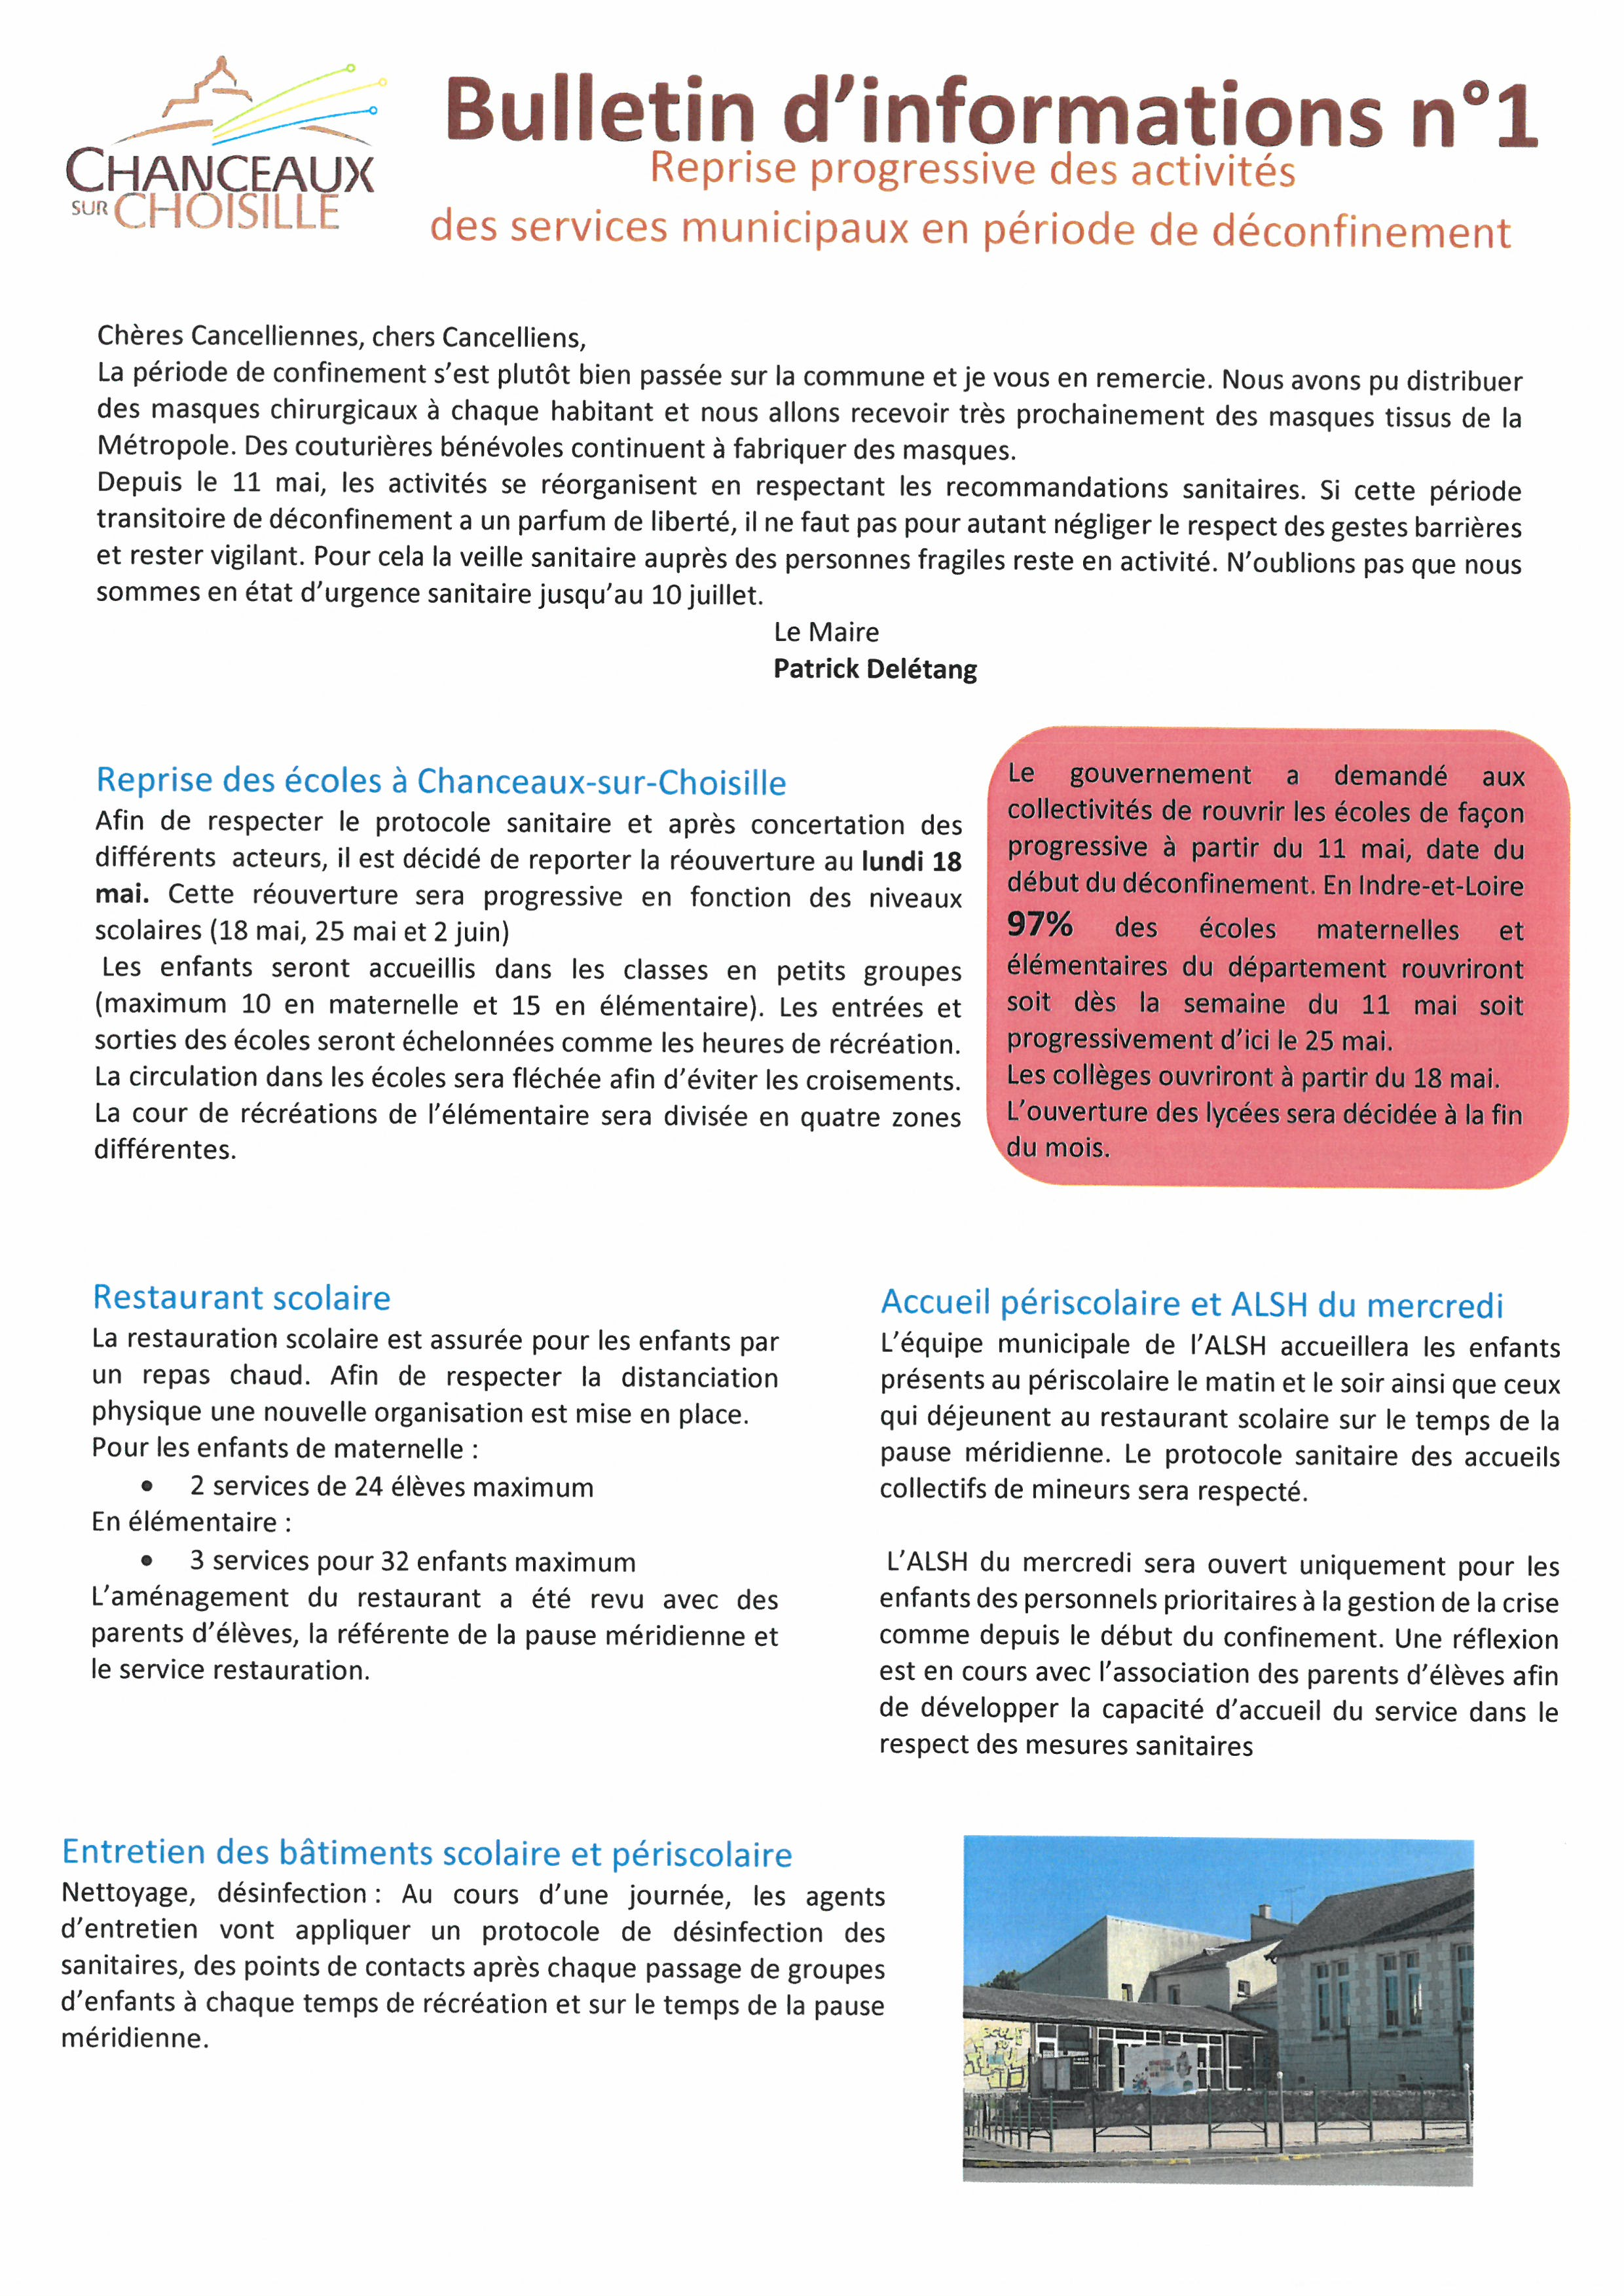 Bulletin dinformation n1